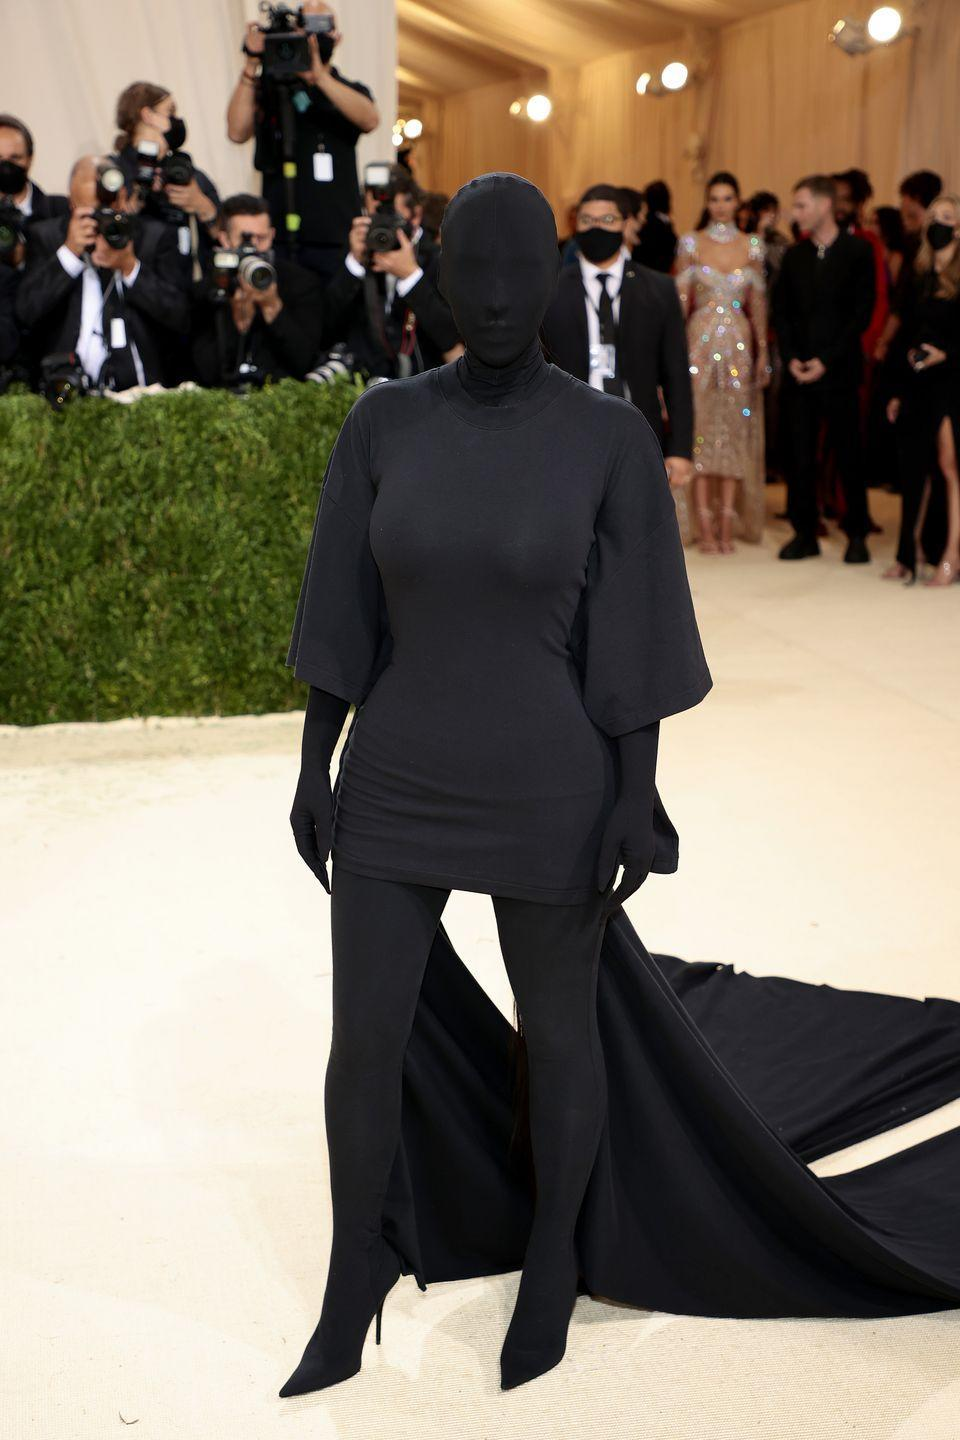 <p>Well, she certainly won't have to worry about hand sanitizer or mask-wearing all night. We'll call this the ultimate in Covid Couture. It's weird, but we respect it. </p>